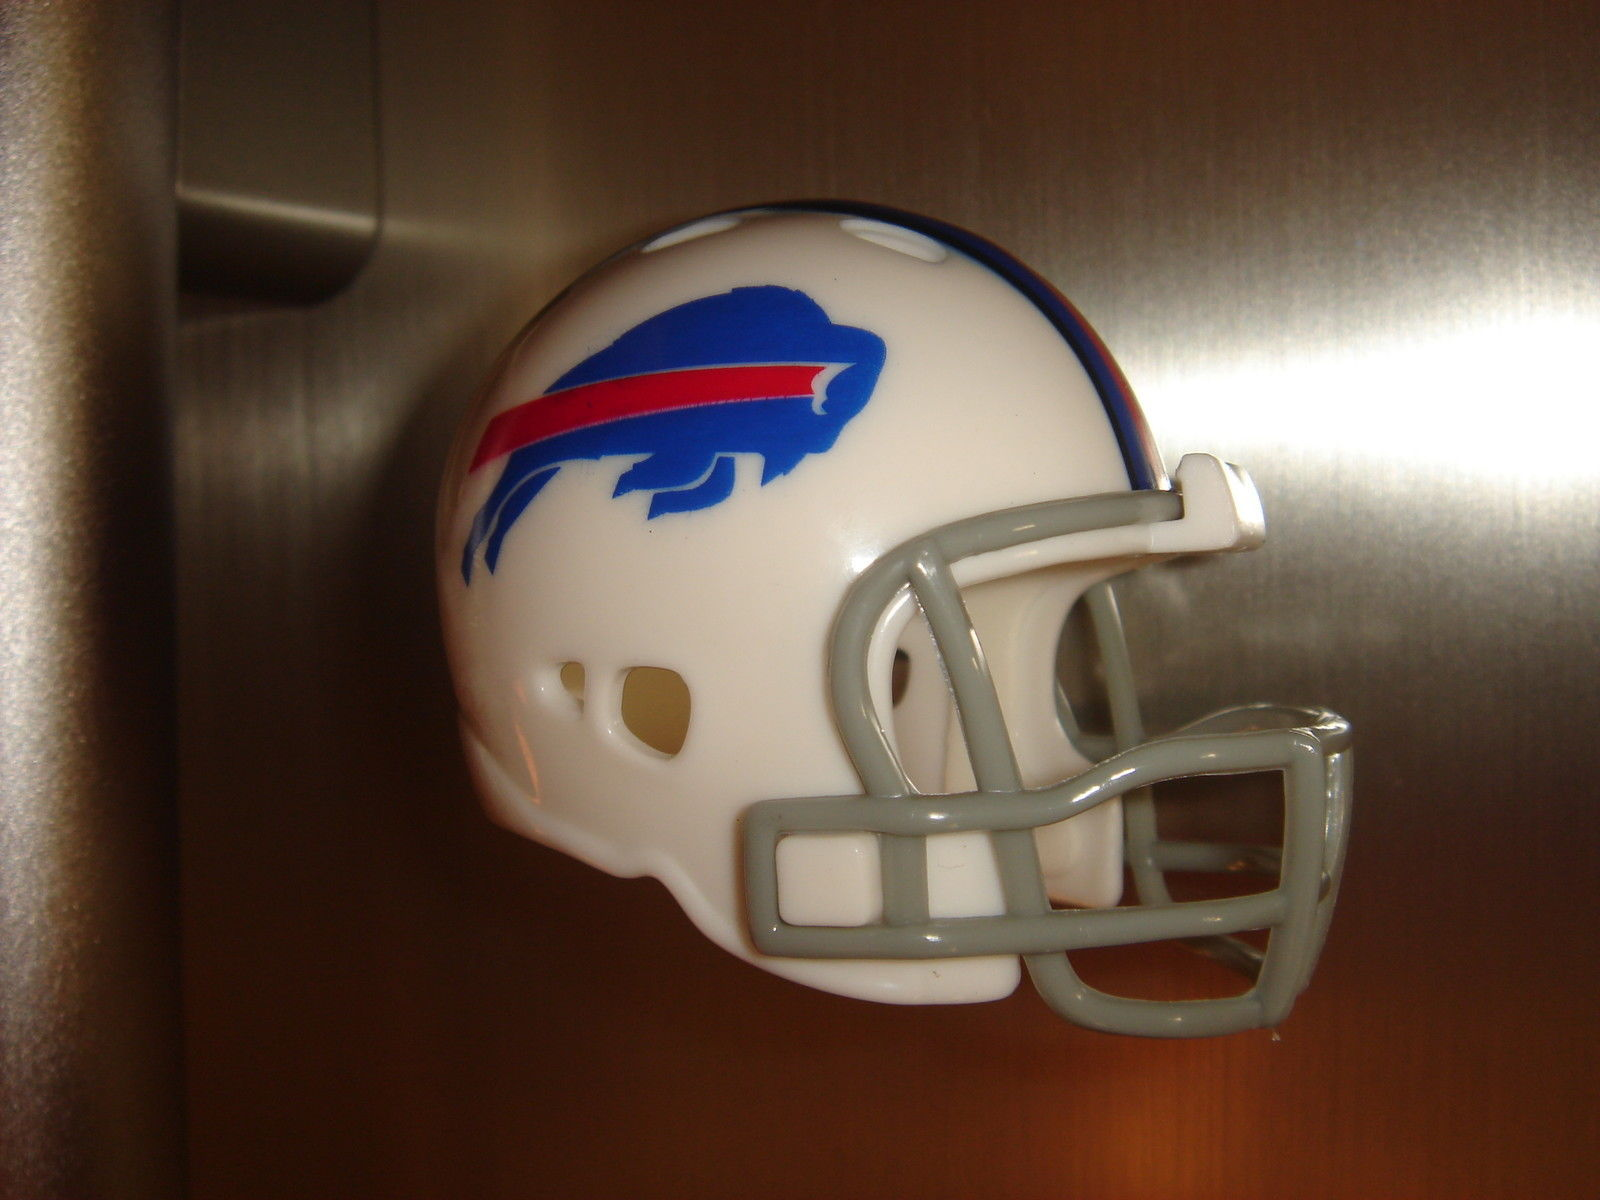 BUFFALO BILLS FRIDGE REFRIGERATOR STRONG MAGNET NFL FOOTBALL HELMET